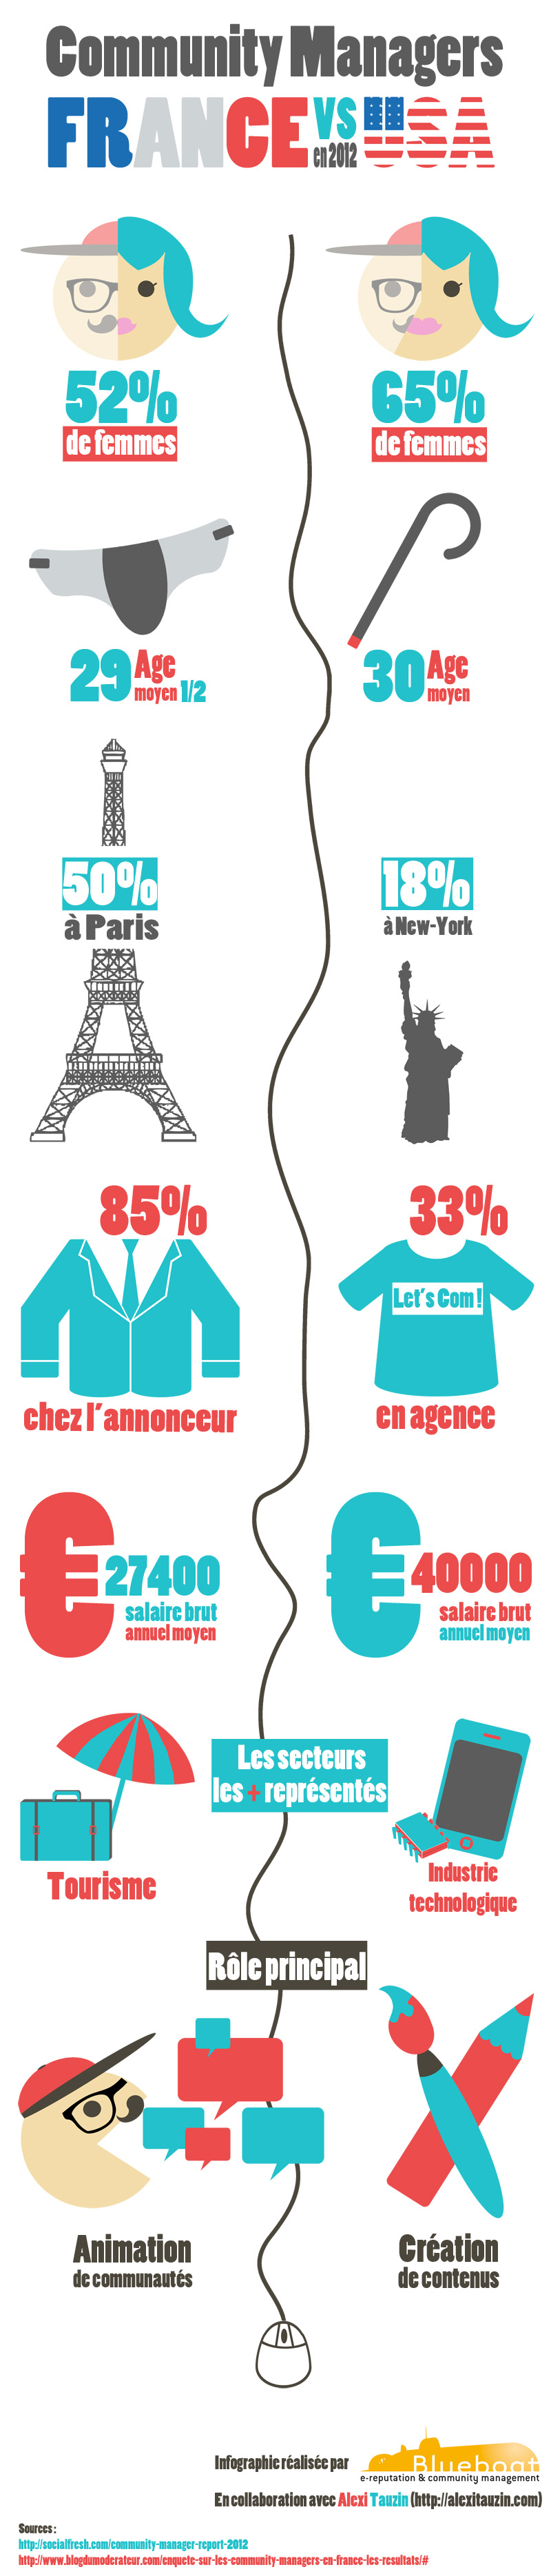 infographie community managers France Usa